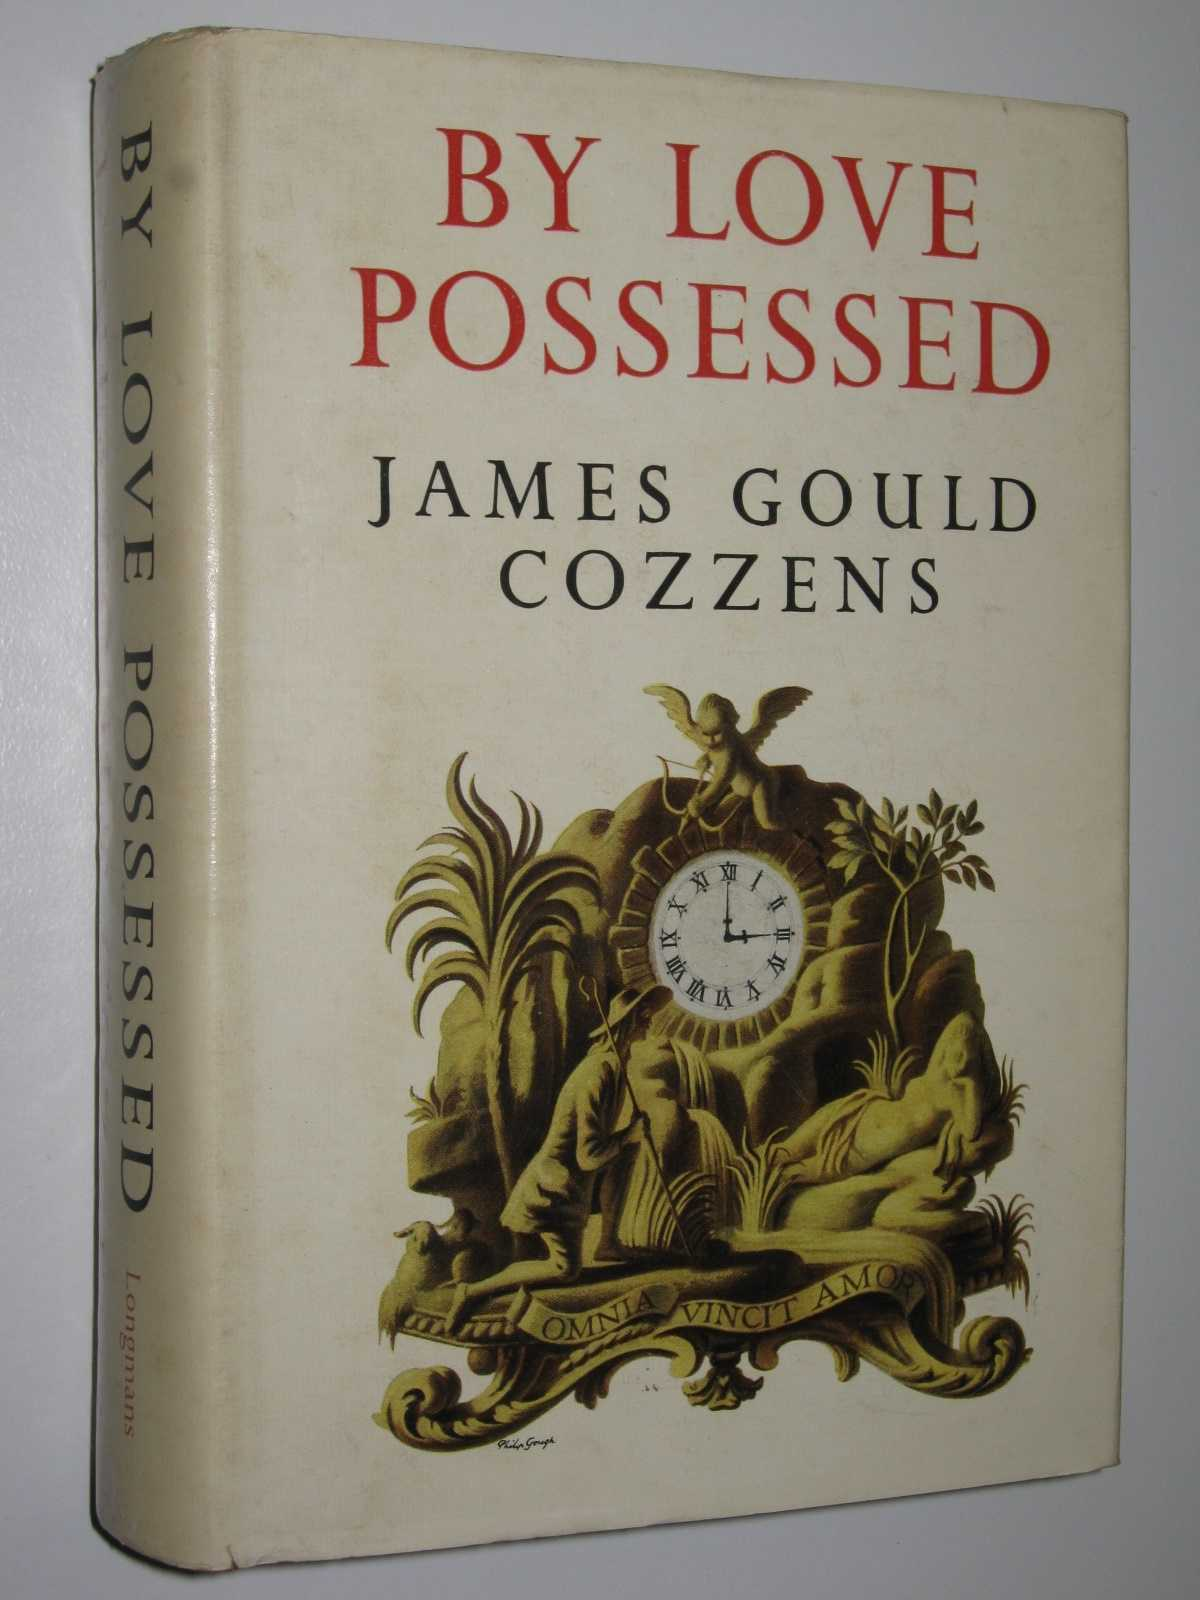 By Love Possessed, Cozzens, James Gould